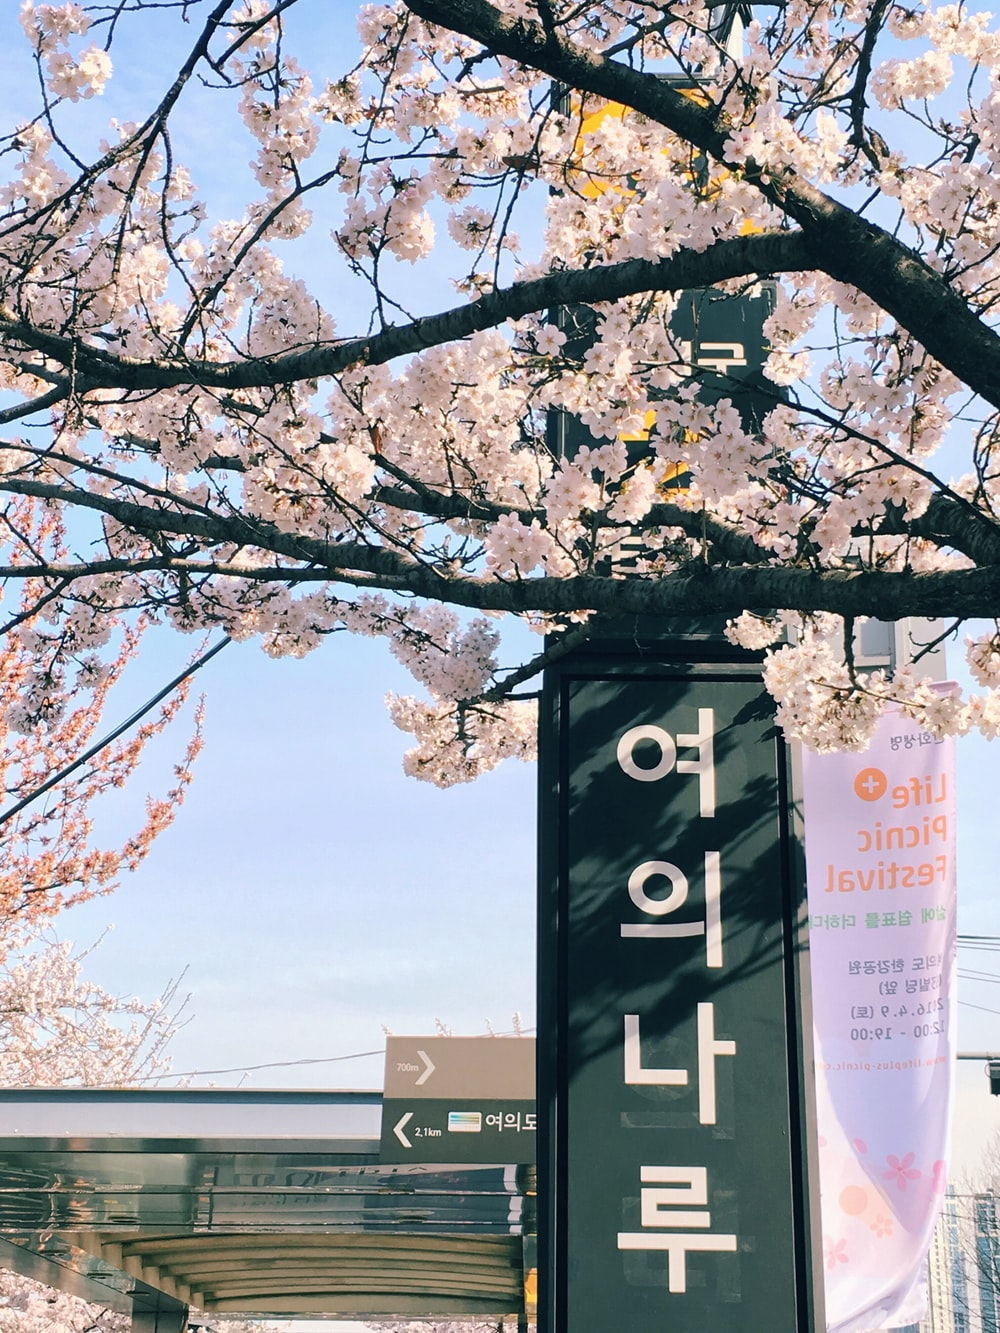 green shed sign with Hangul text during daytime beside tree with light pink flowers during daytime